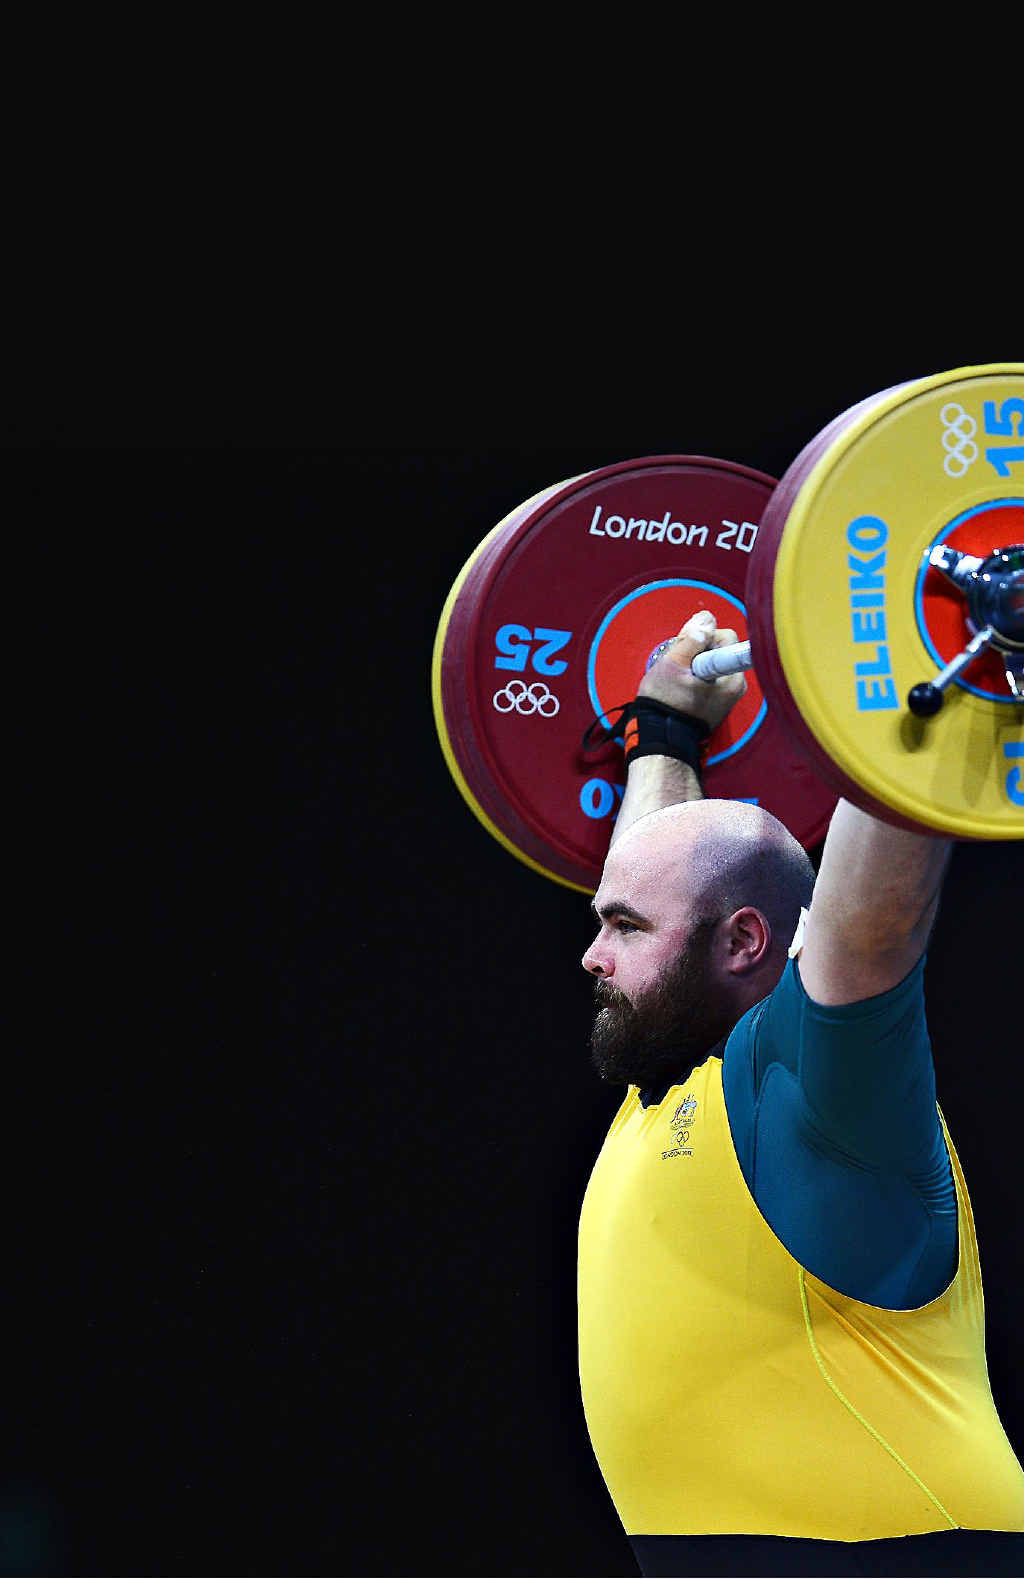 HEAVY-LIFTER: Damon Kelly, competing in the London Olympics last year, may set his sights on representing Australia in the 2016 Games in Rio.